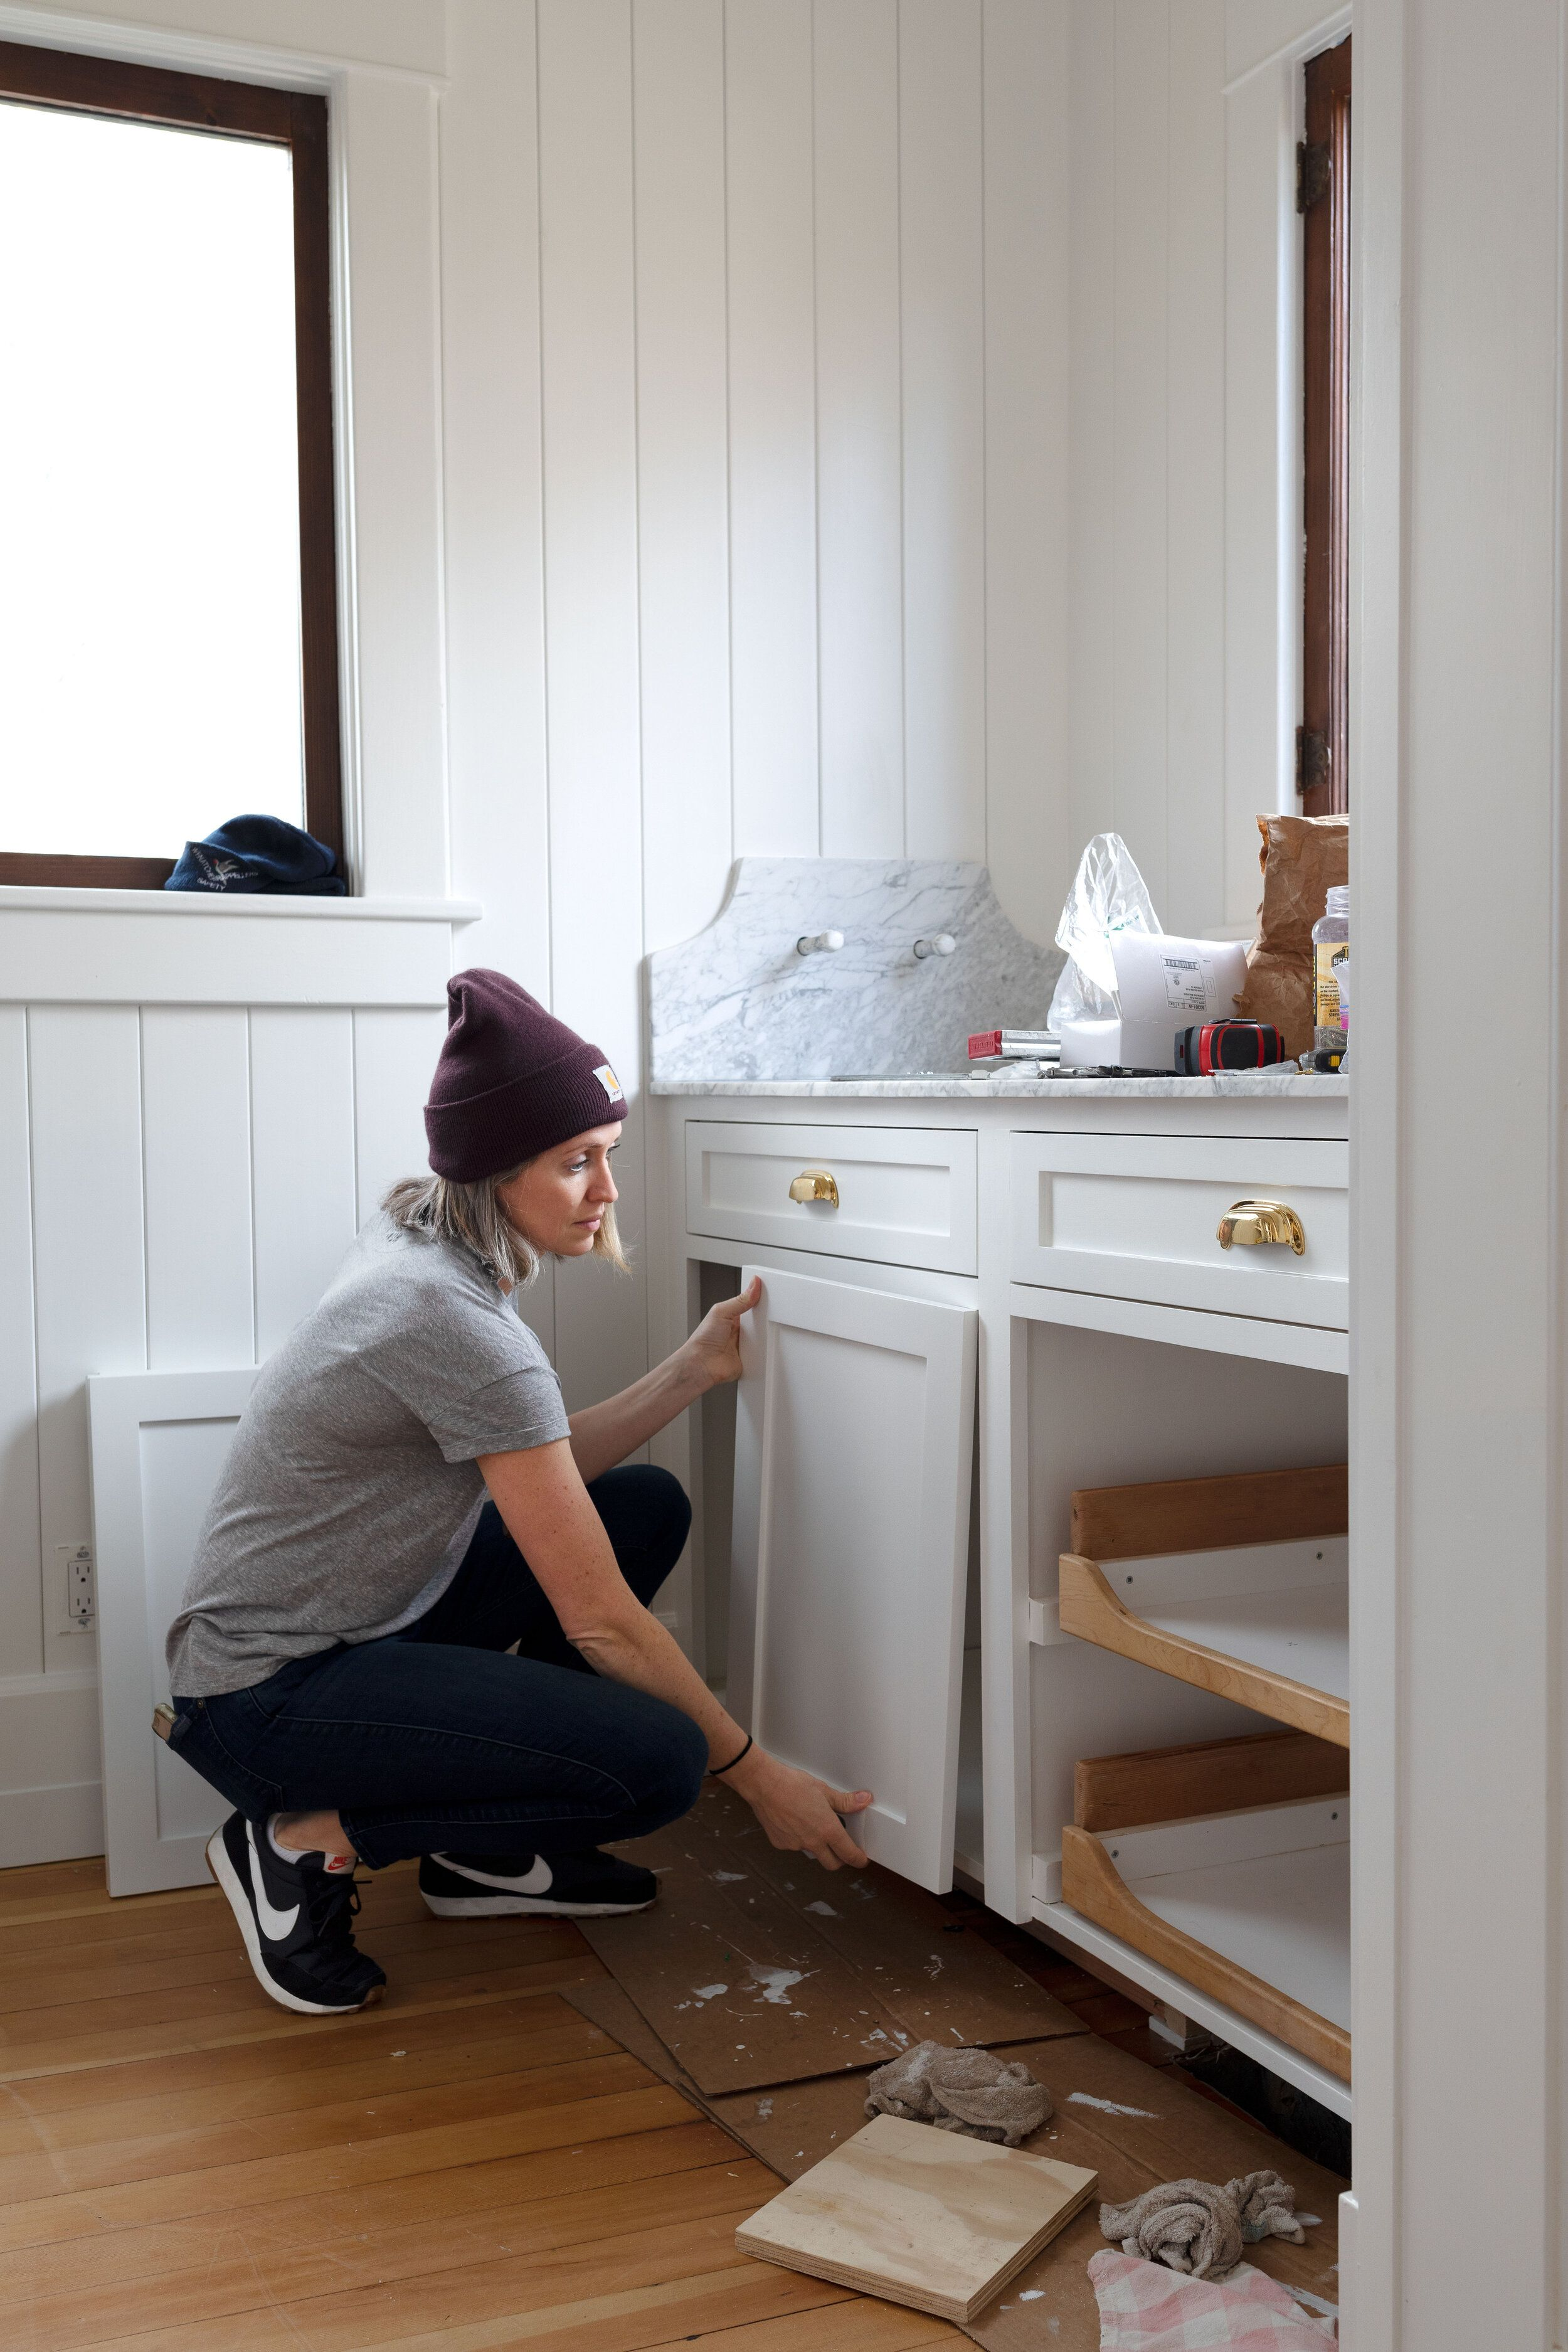 Diy How To Paint Cabinets By Hand An Update On Our Farmhouse Pantry In 2020 Painting Cabinets Custom Cabinet Doors Farmhouse Pantry